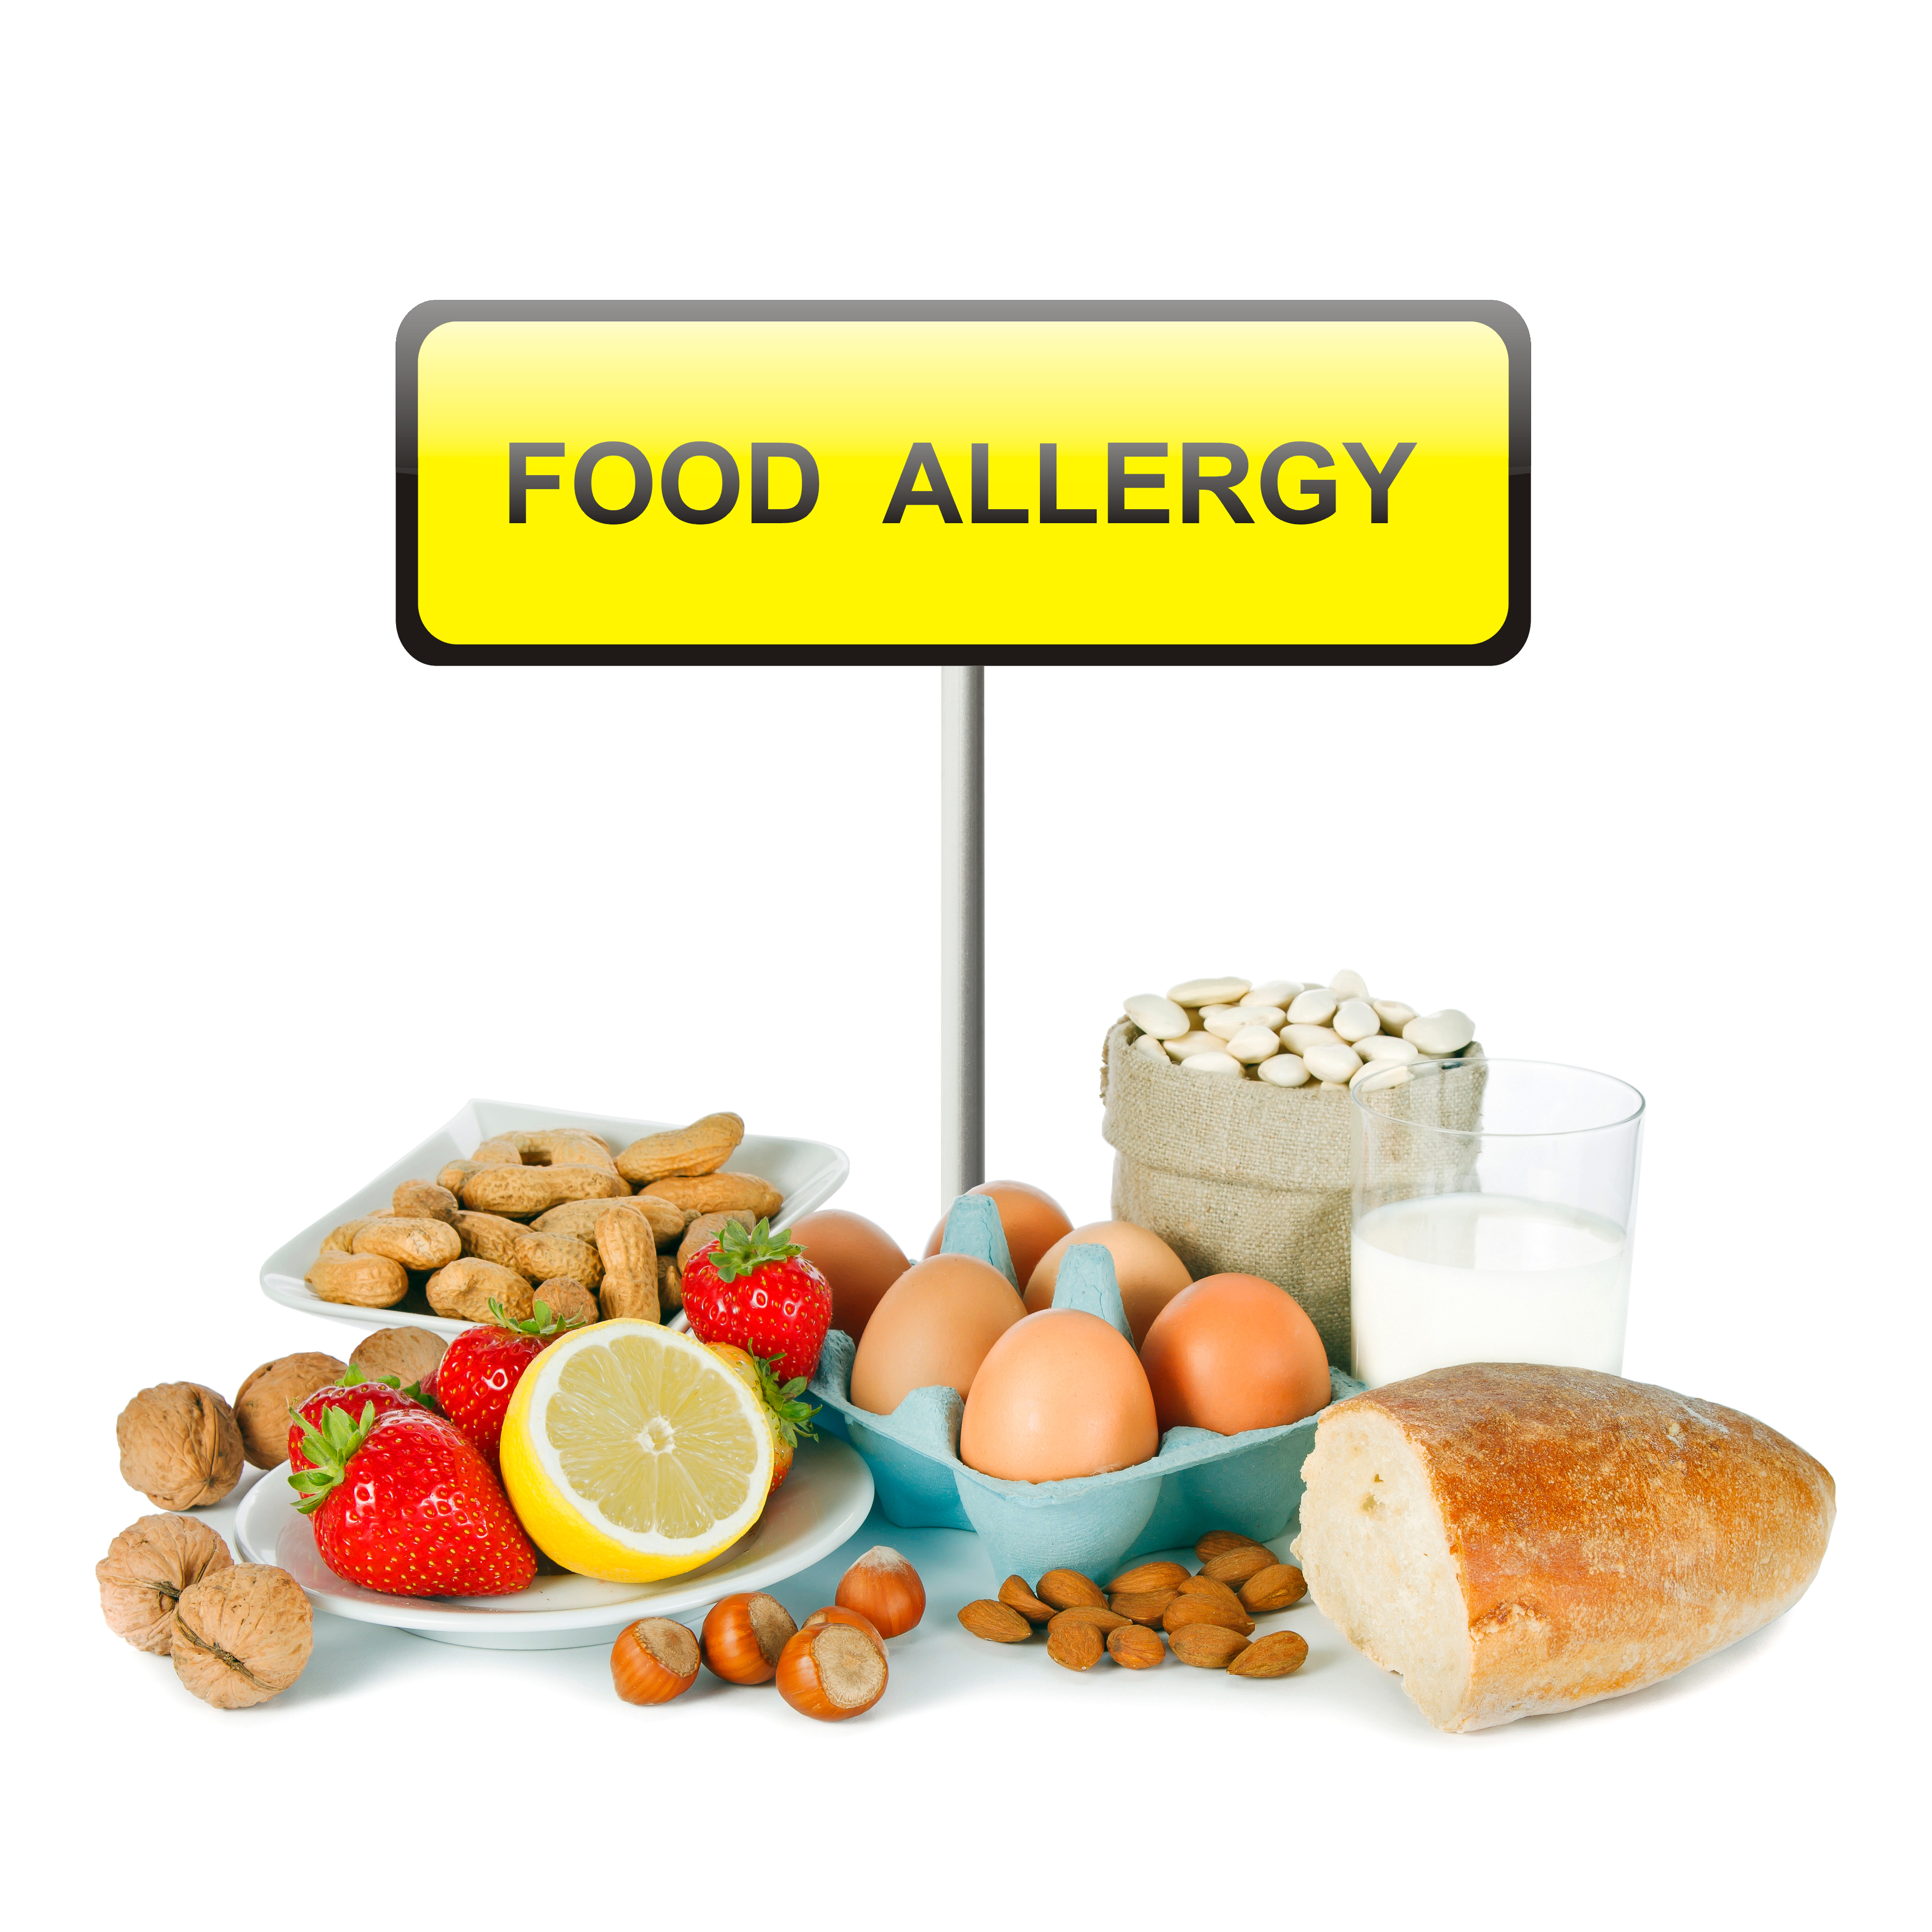 Be Food Allergy Aware